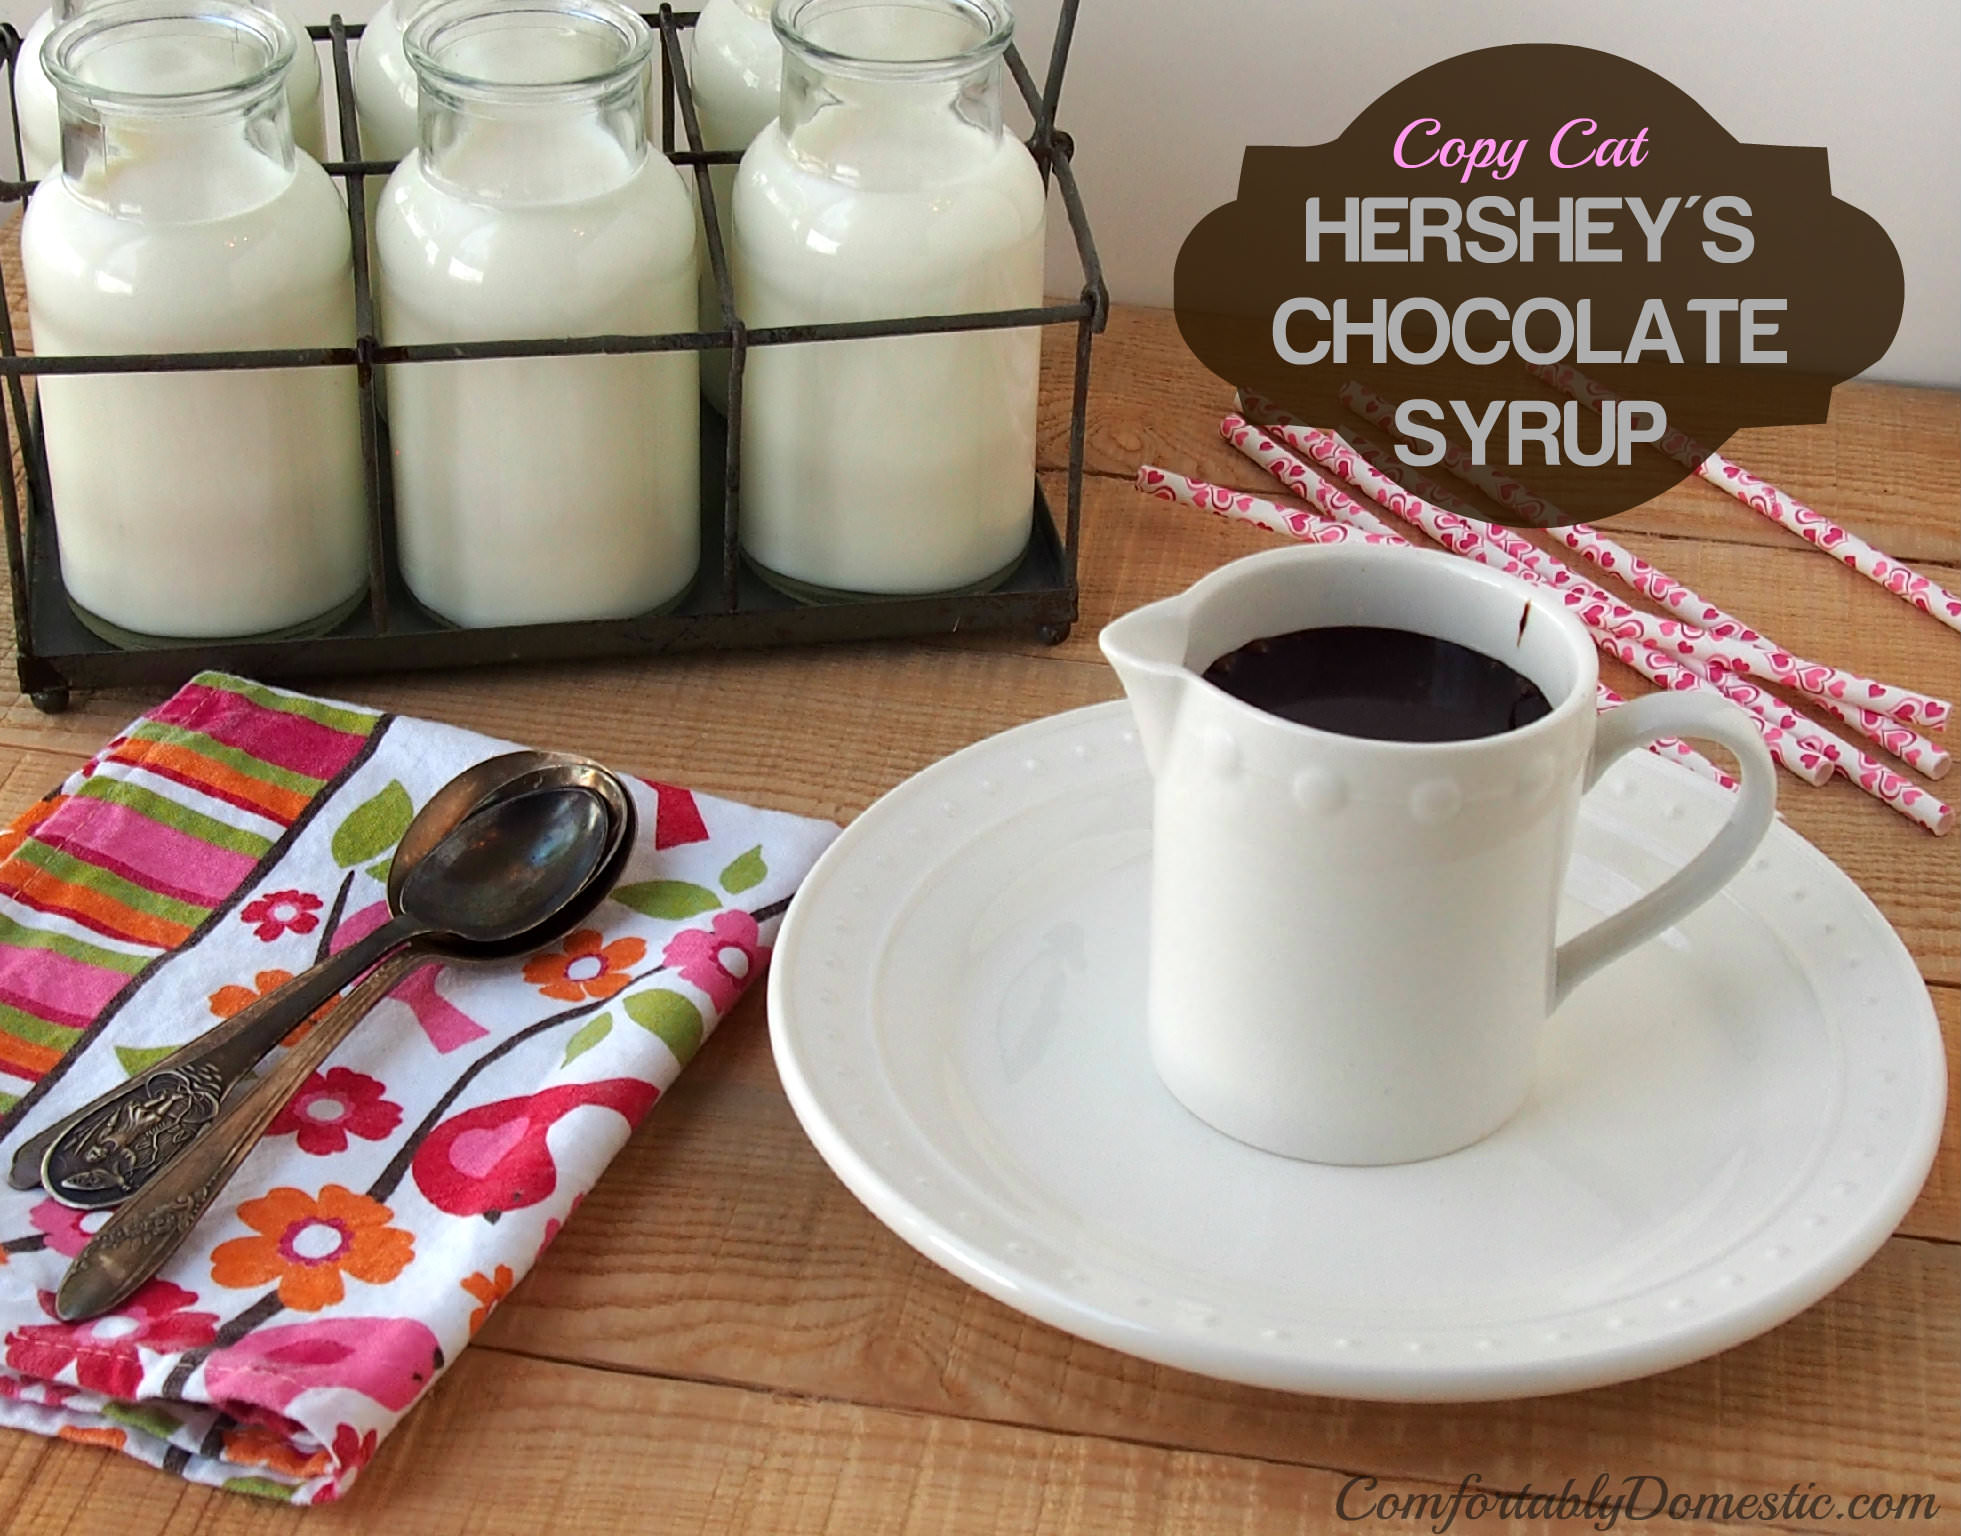 Copy Cat Hershey's Chocolate Syrup | ComfortablyDomestic.com